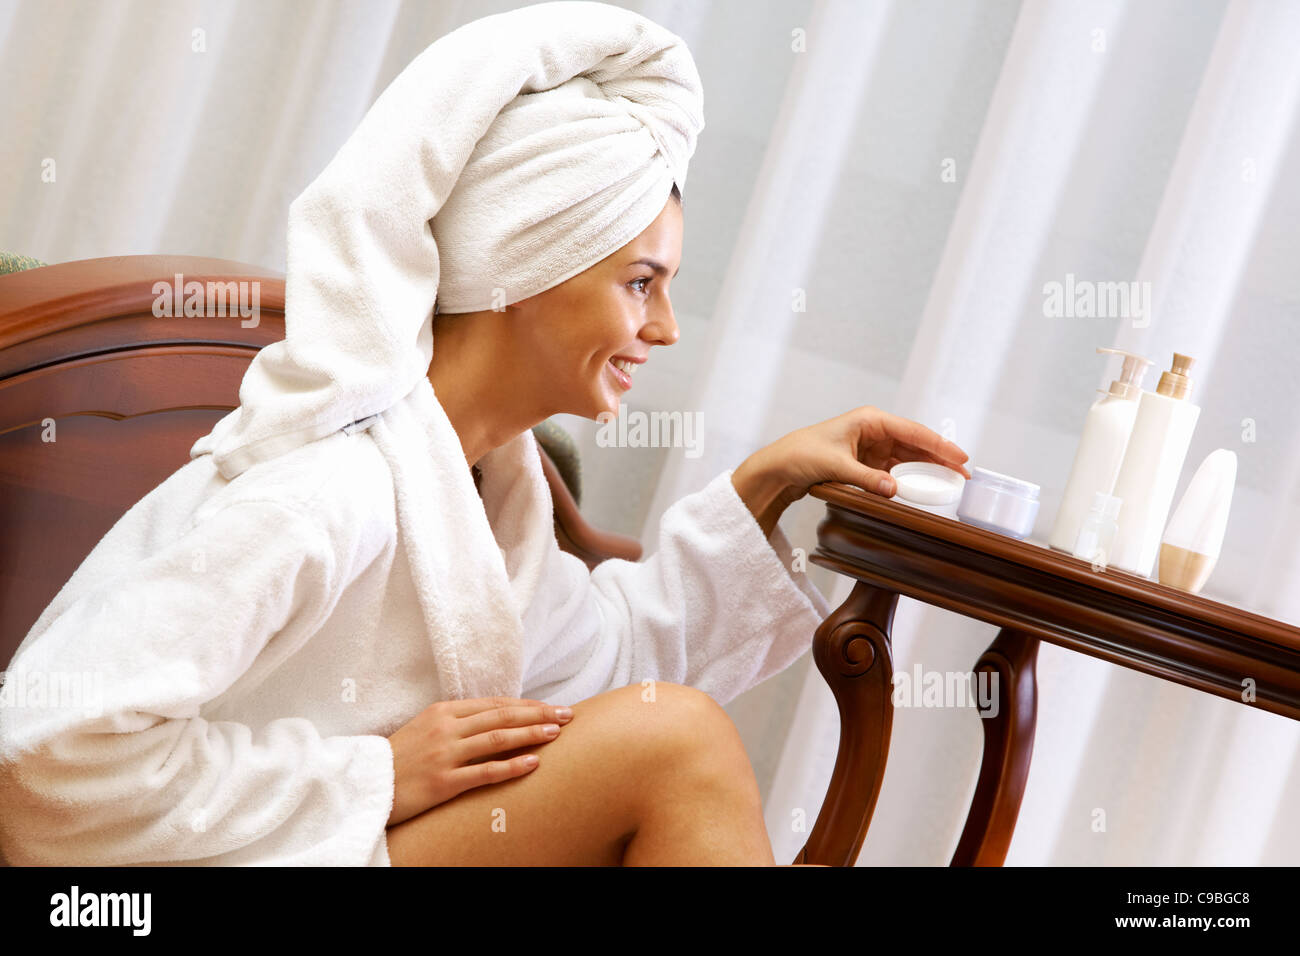 Portrait of pretty female taking care of her skin after bath - Stock Image